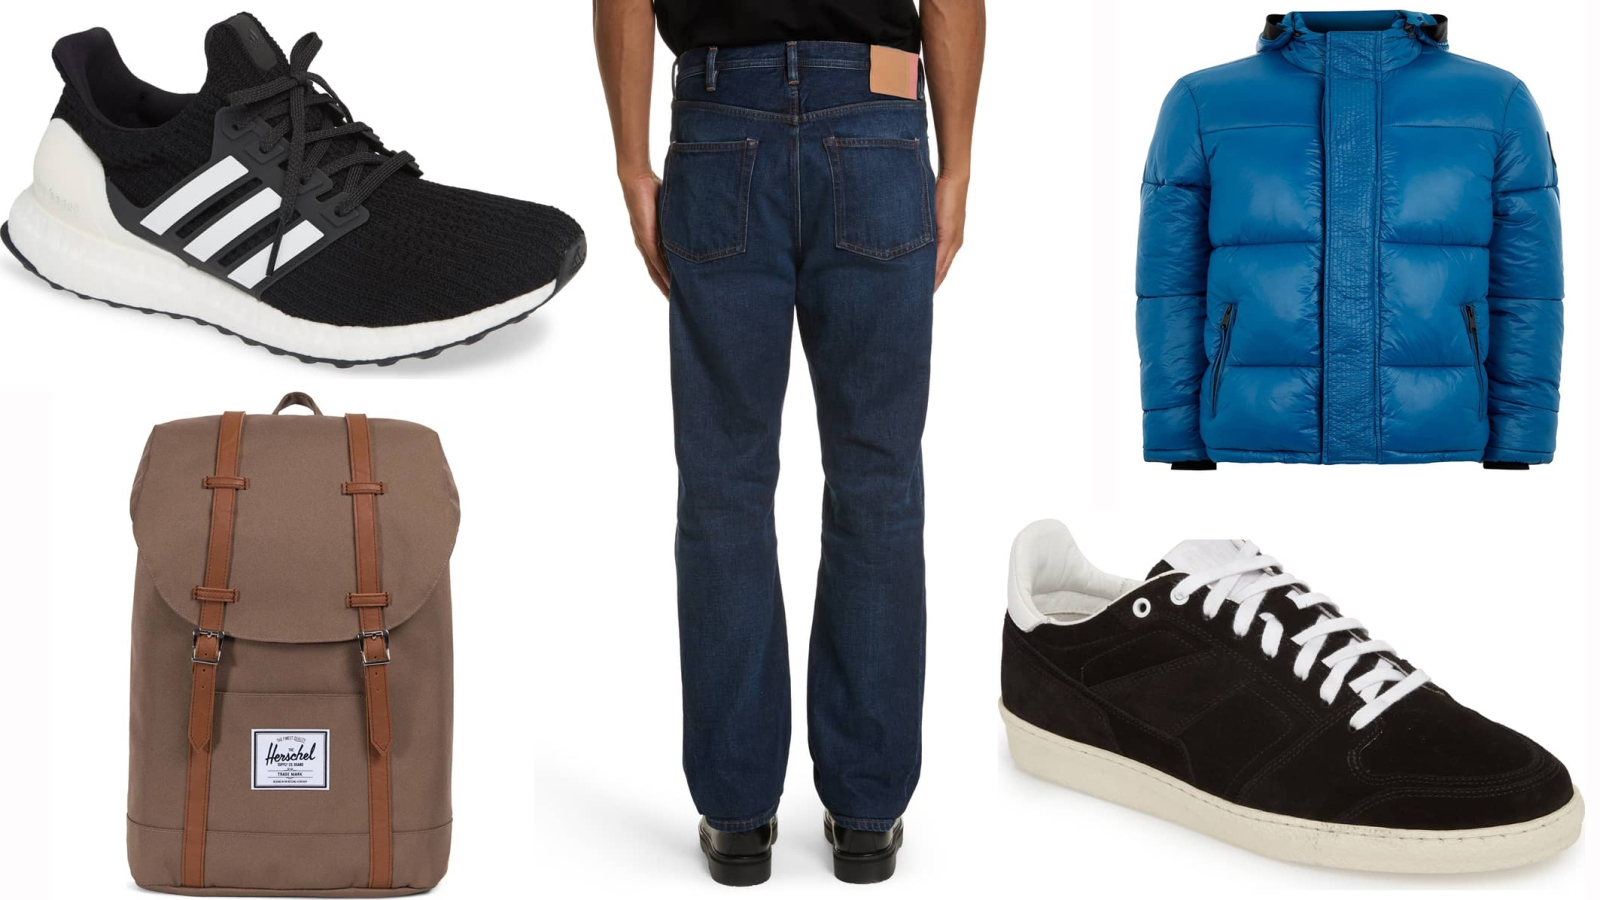 cc500f1422e Nordstrom s Half-Yearly Sale Is Back! Winter Deals You Can t Afford To Miss  - Men s Journal